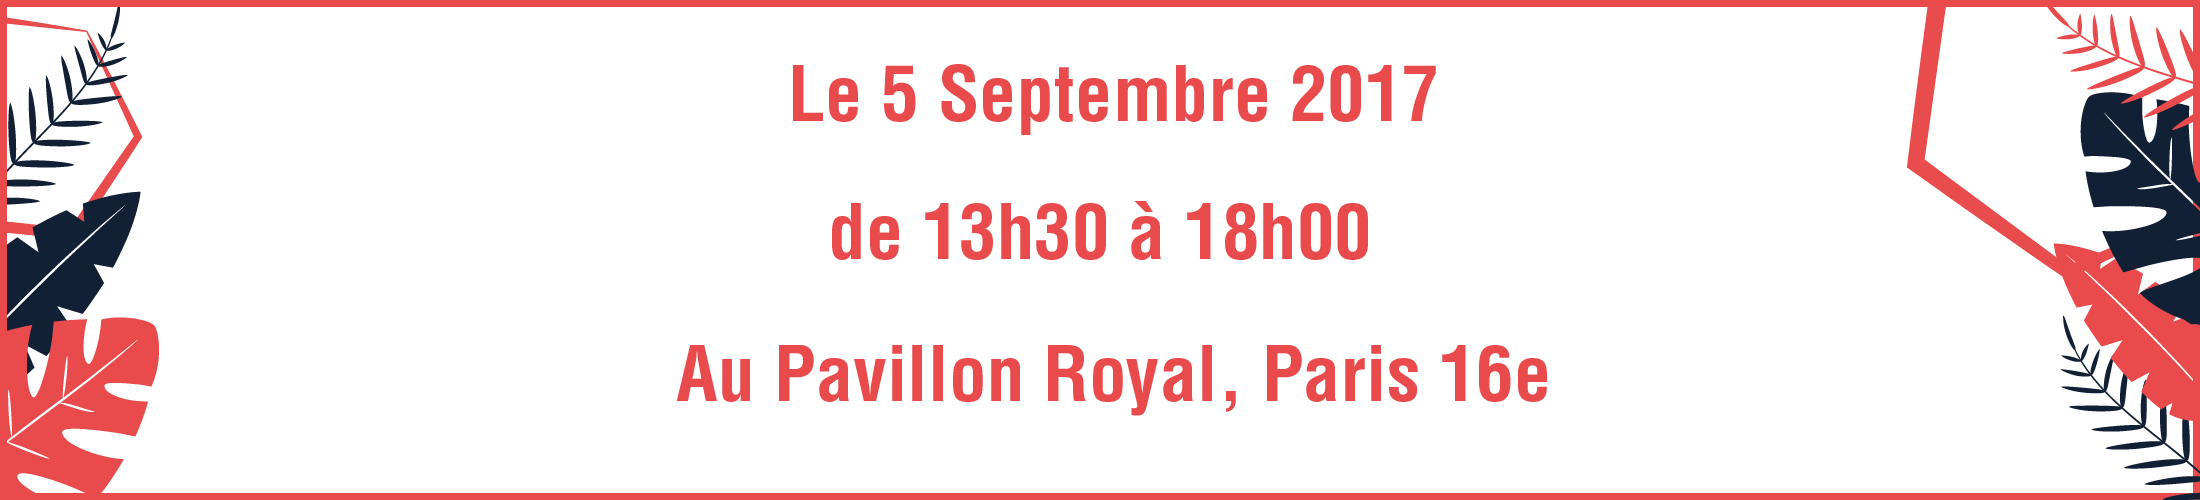 5 Septembre 2017, Pavillon Royal Paris 16e